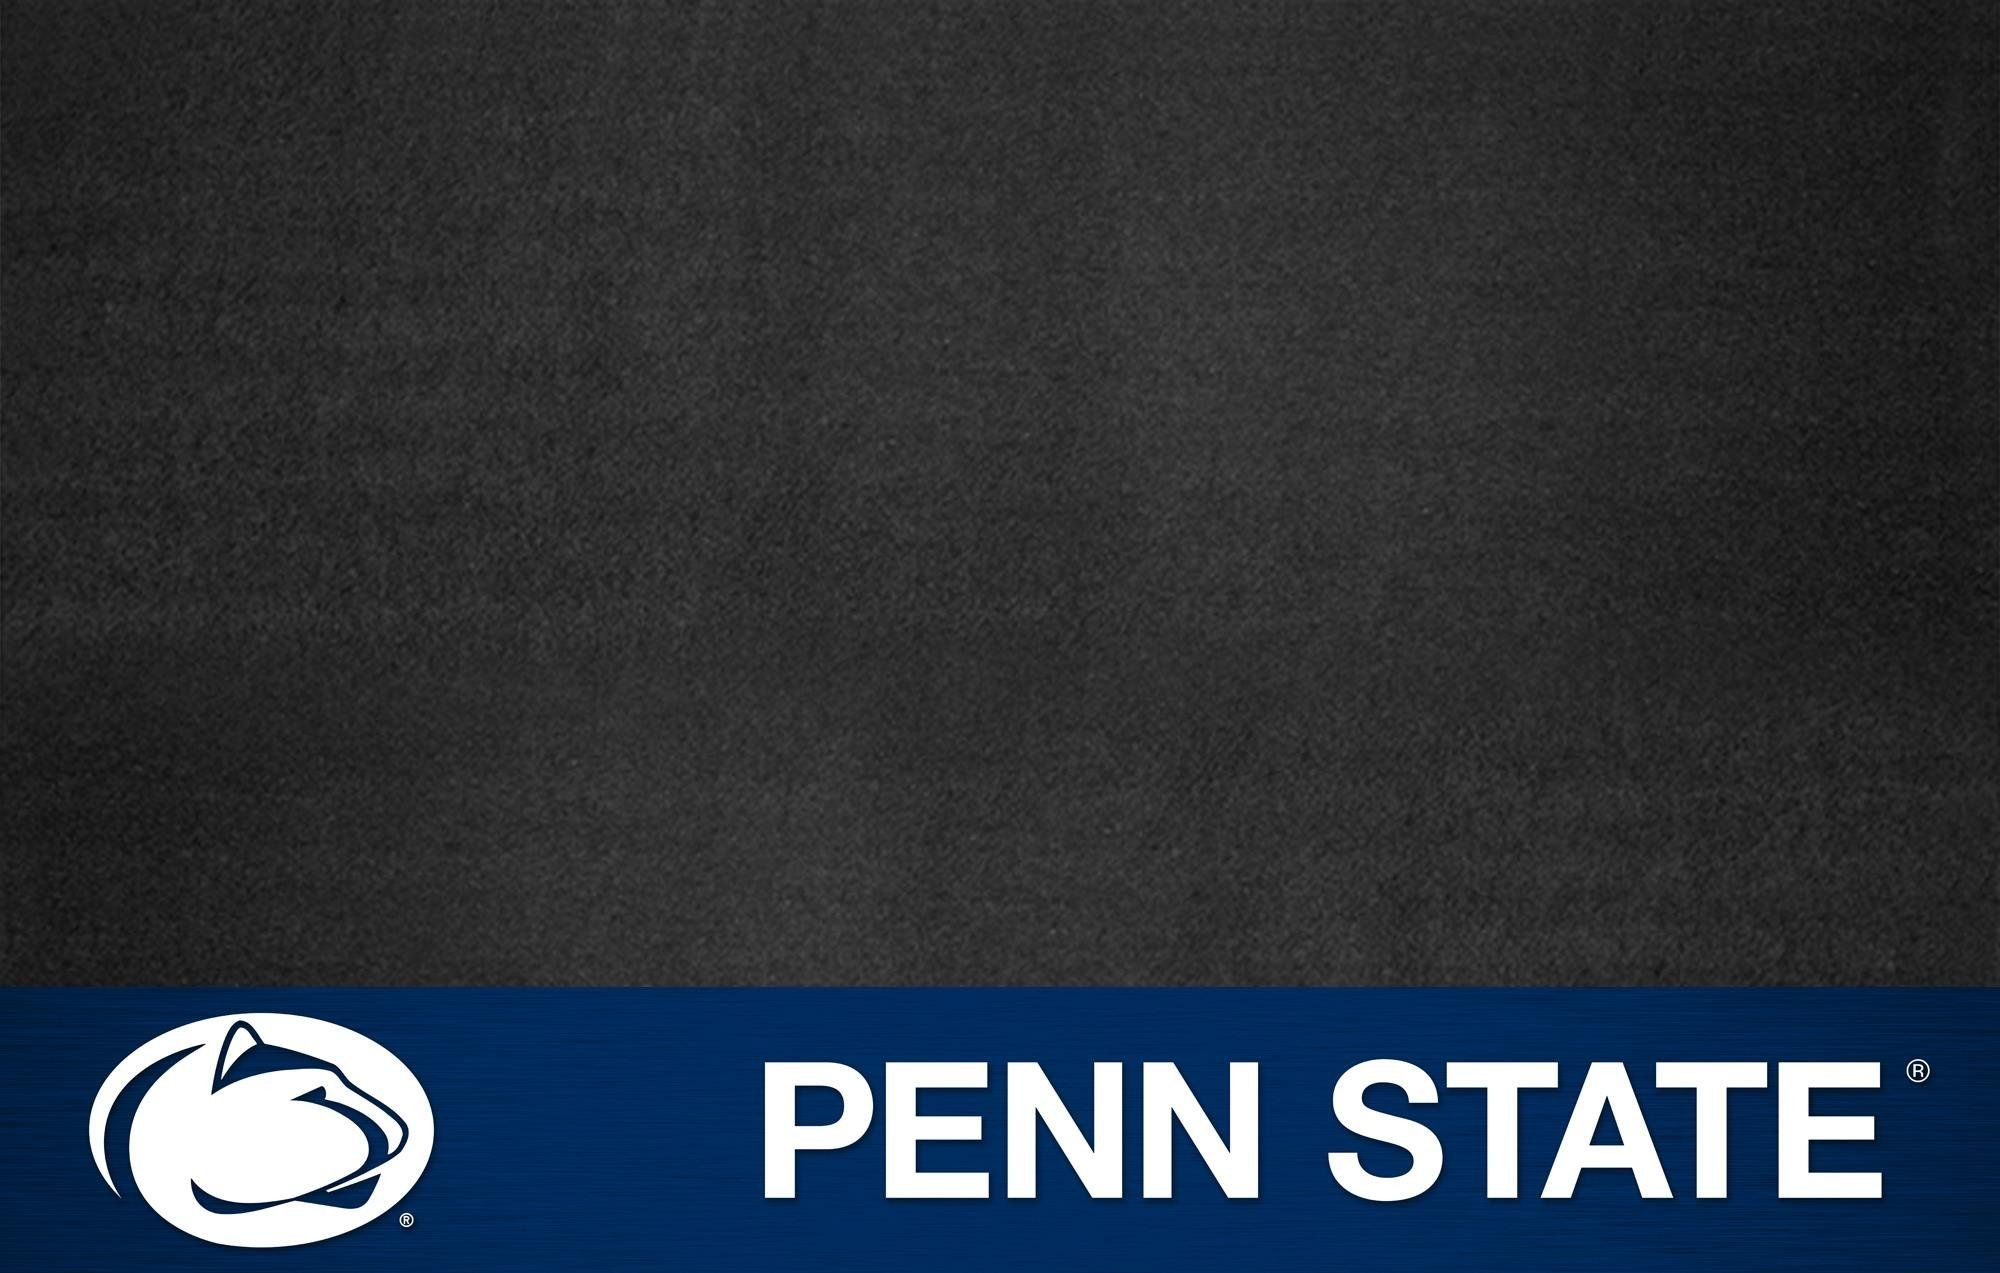 2000x1273 PENN STATE NITTANY LIONS college football wallpaper